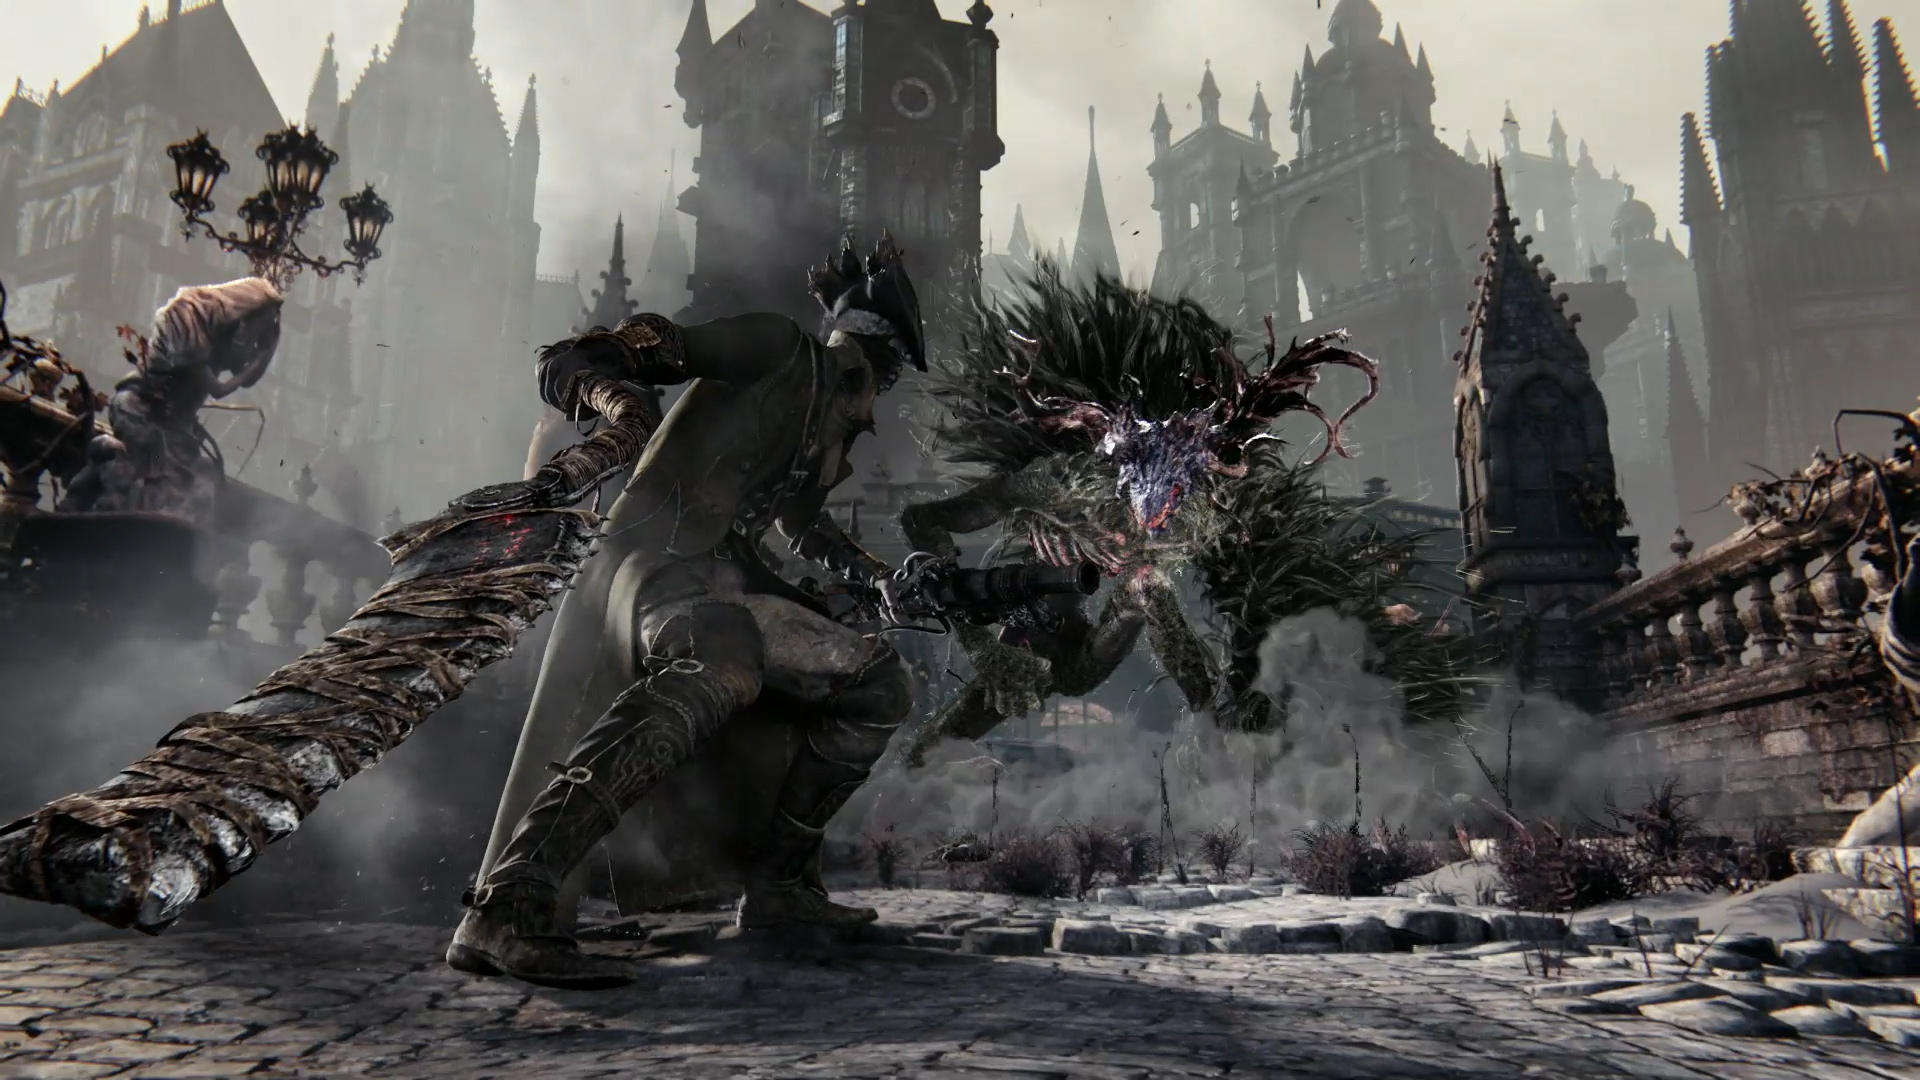 Bloodborne - Iosefka'-s Clinic: Explore Central Yharnam, Defeat the ...